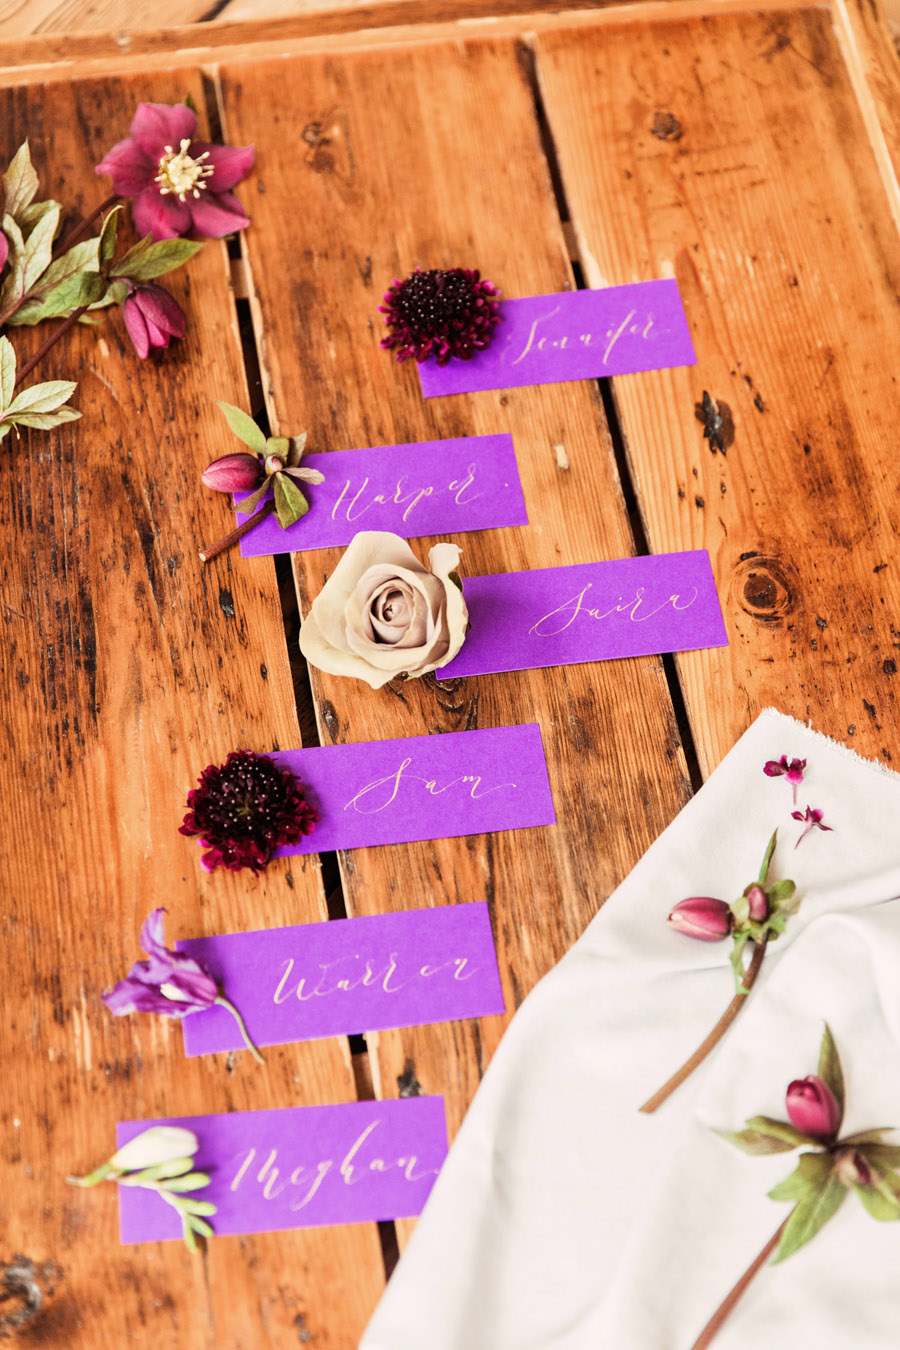 Calligraphy wedding service for place names and more - written by By Moon and Tide Calligraphy - image credit Camilla Lucinda (6)